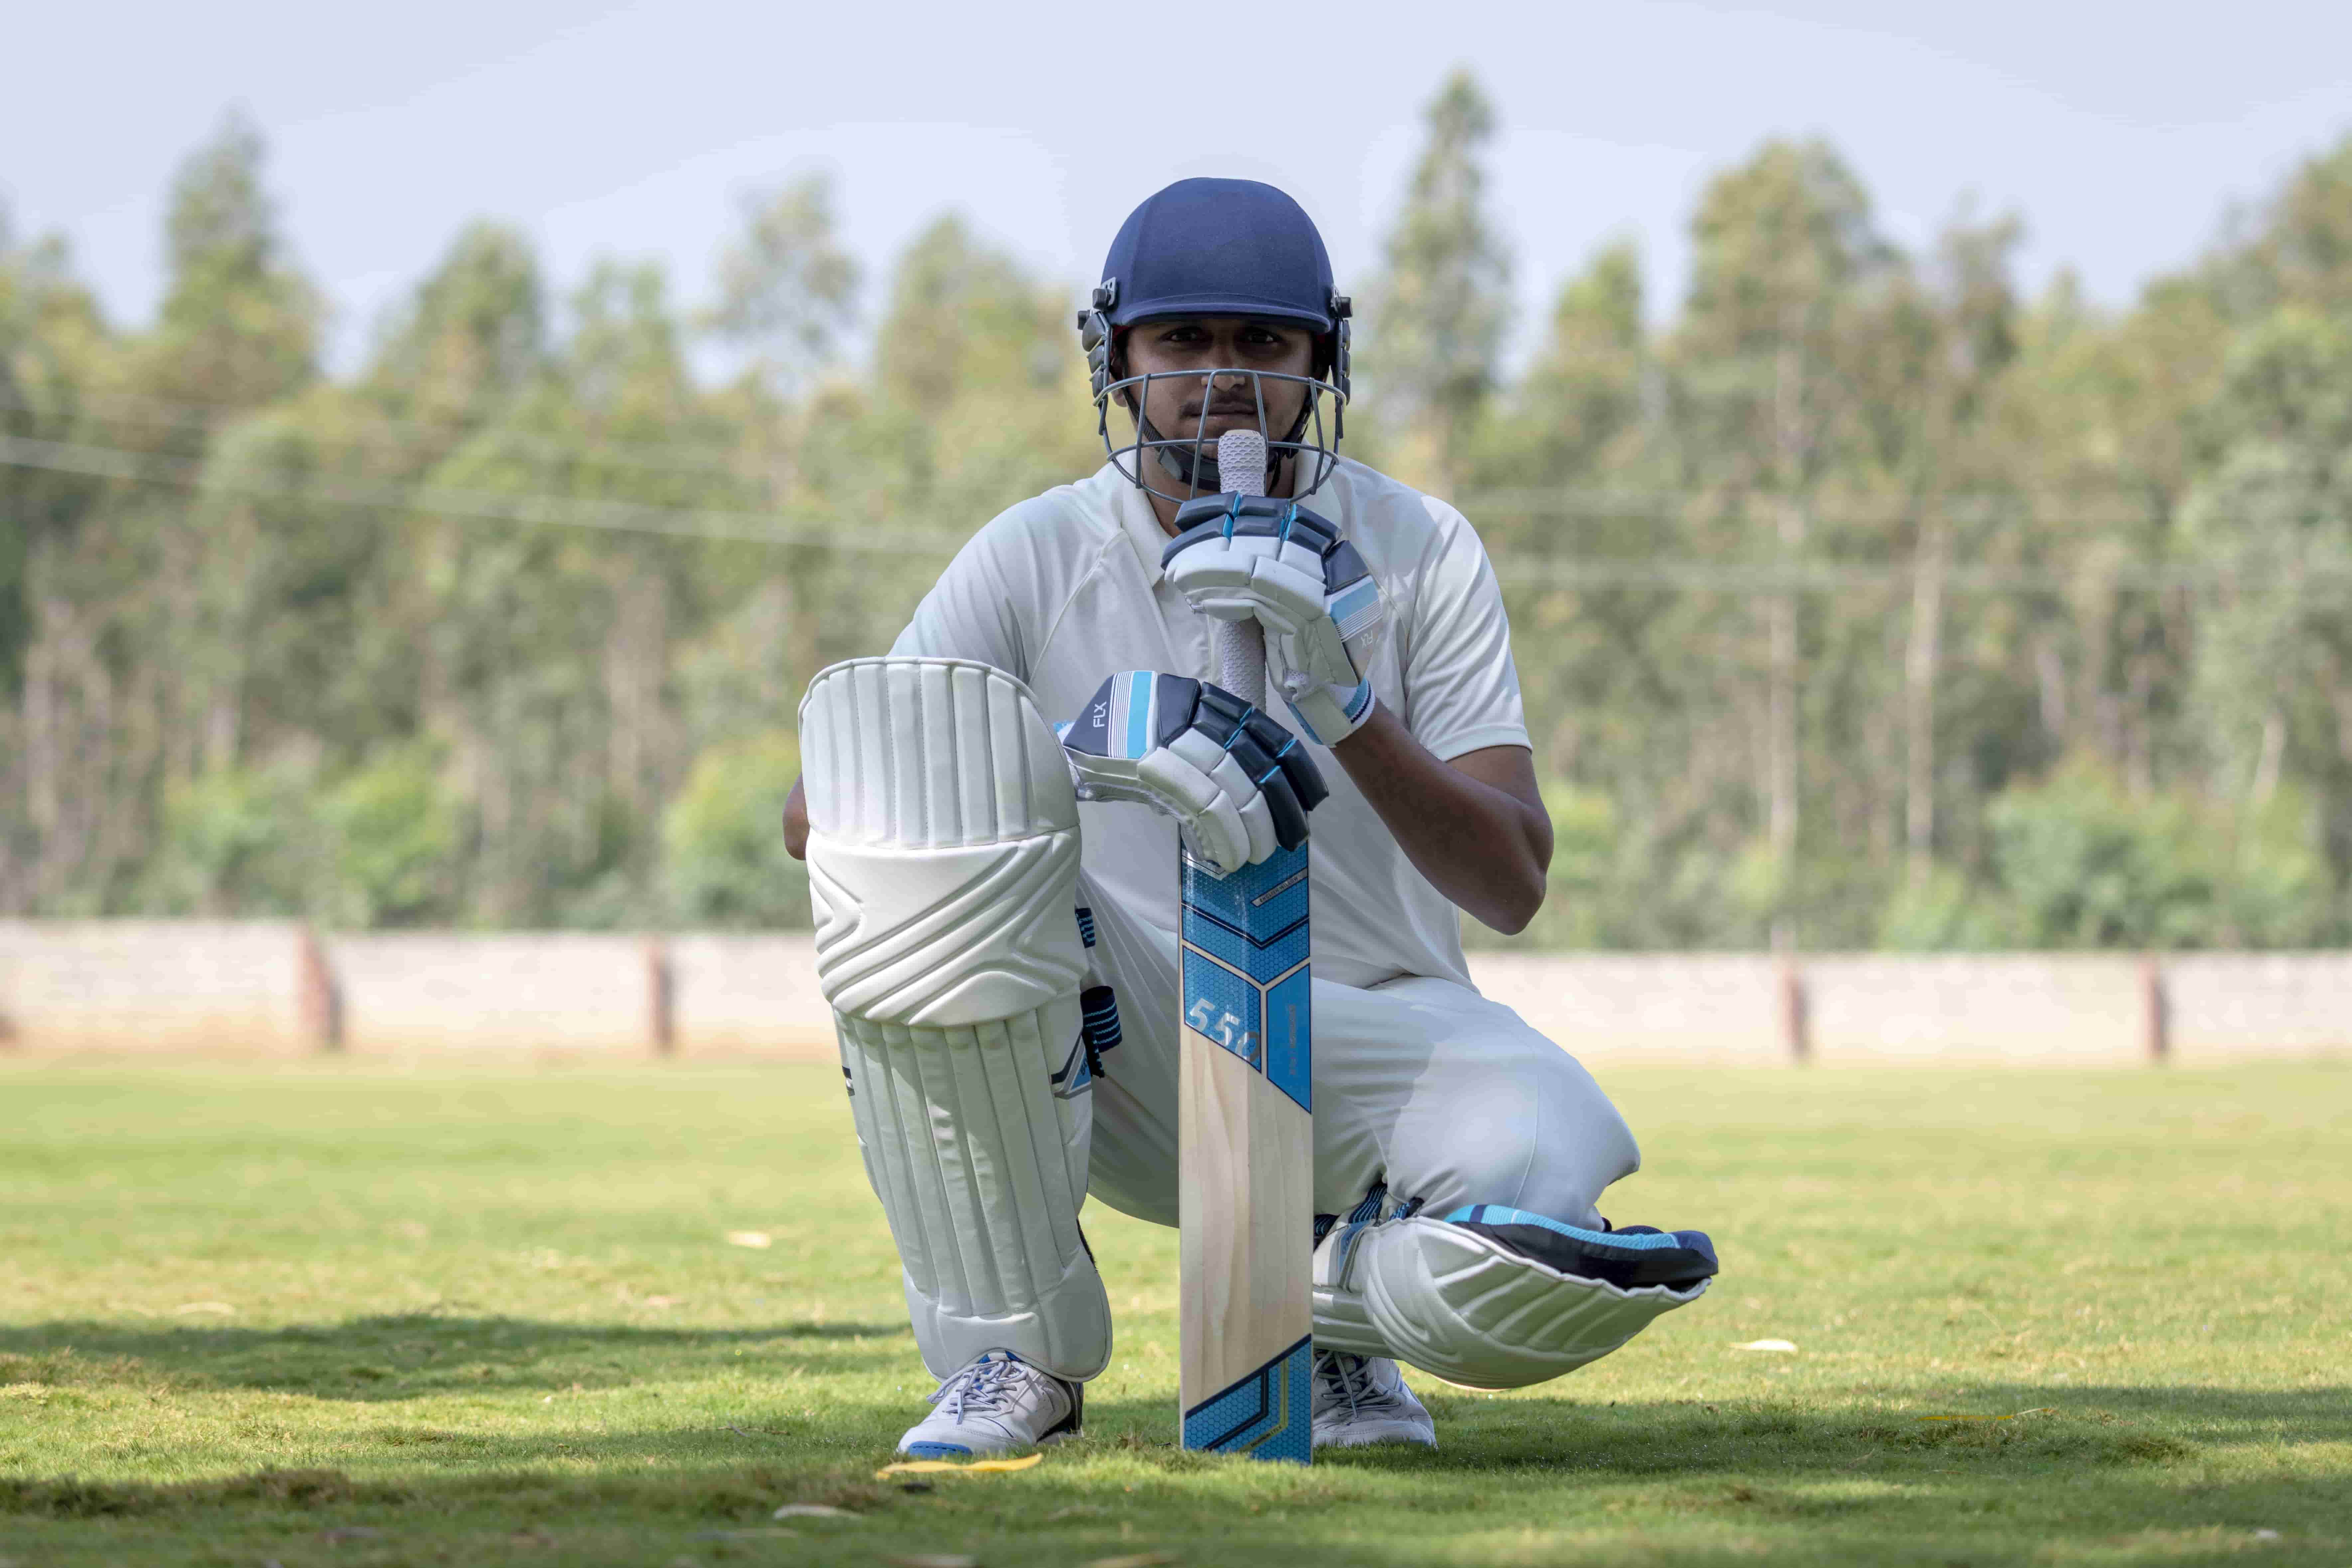 How to choose the best cricket kit for you: A complete guide